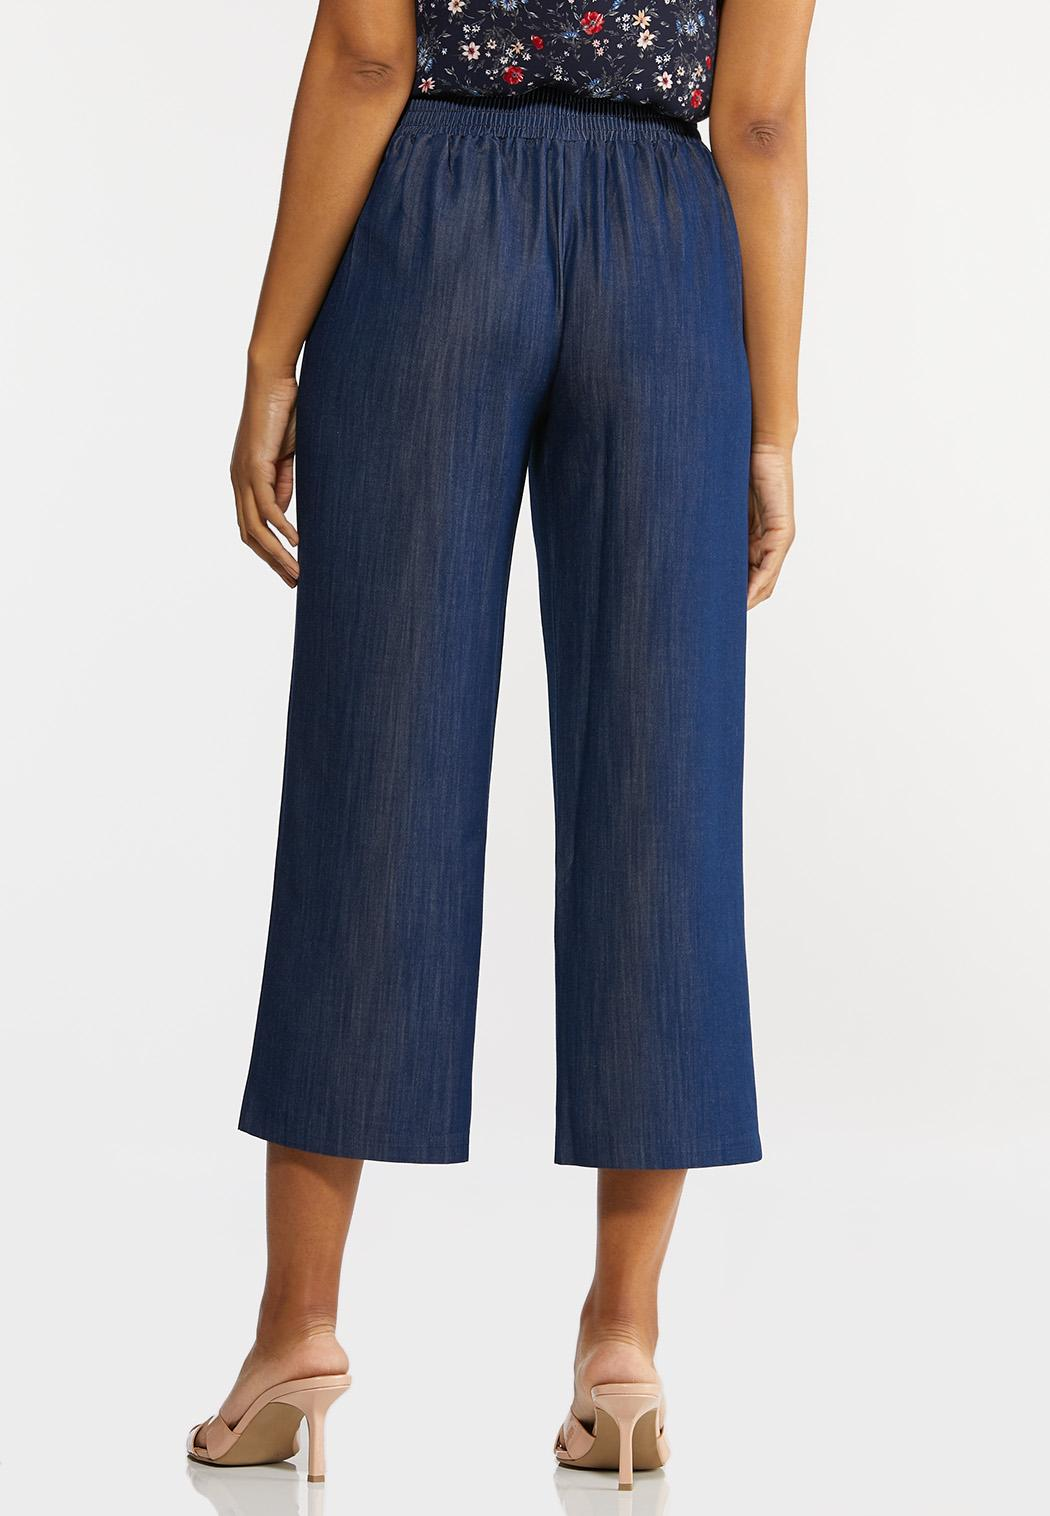 Cropped Denim Blue Pants (Item #44291752)